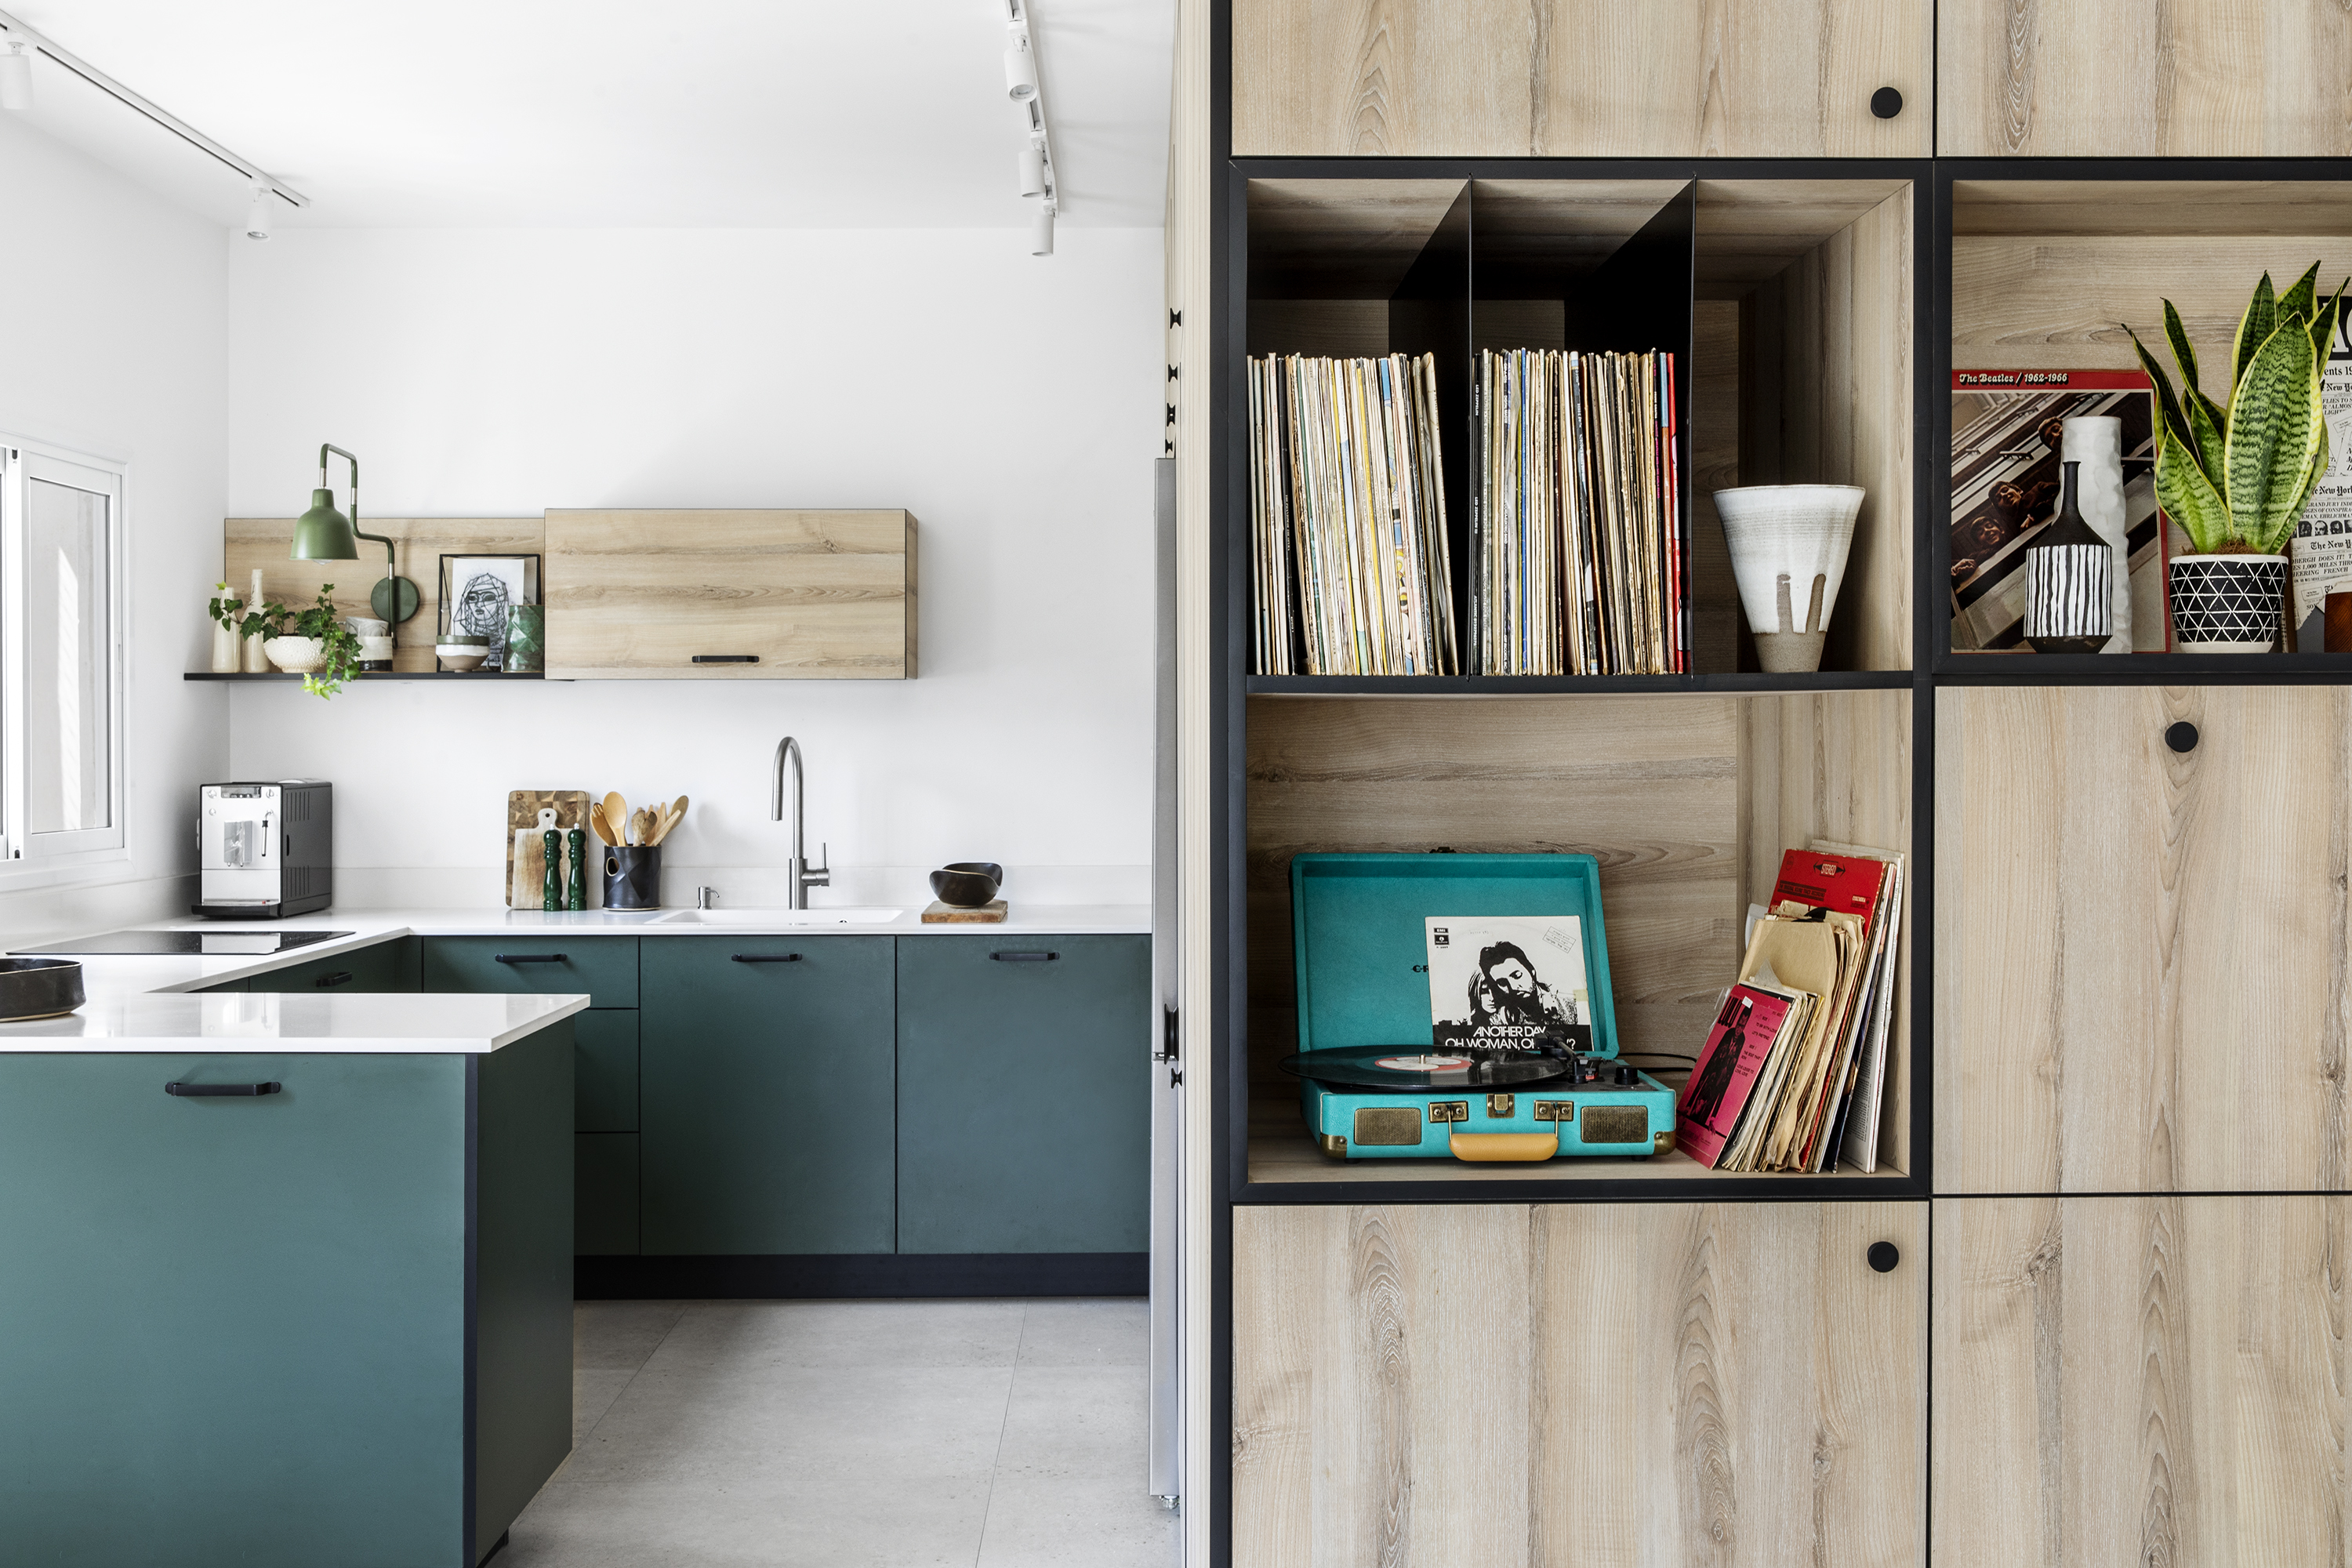 Apartment T&O by Vered Bonfiglioli